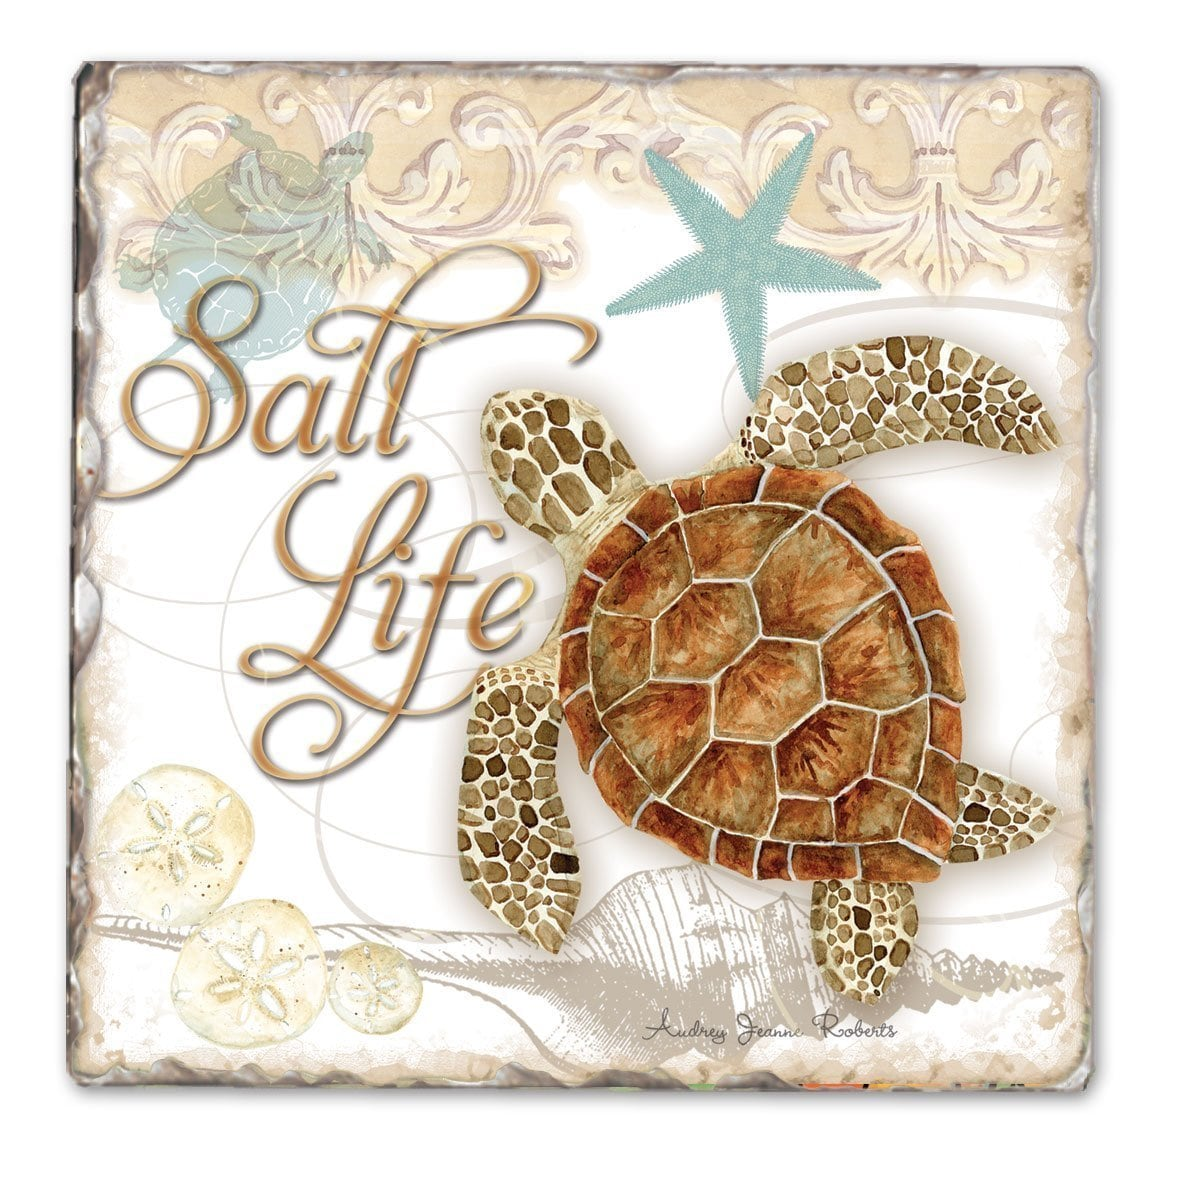 Counterart Beach Life Sea Turtles Absorbent Stone Tumbled Tile Coaster Set Of 4 4x6 Overstock 13221756